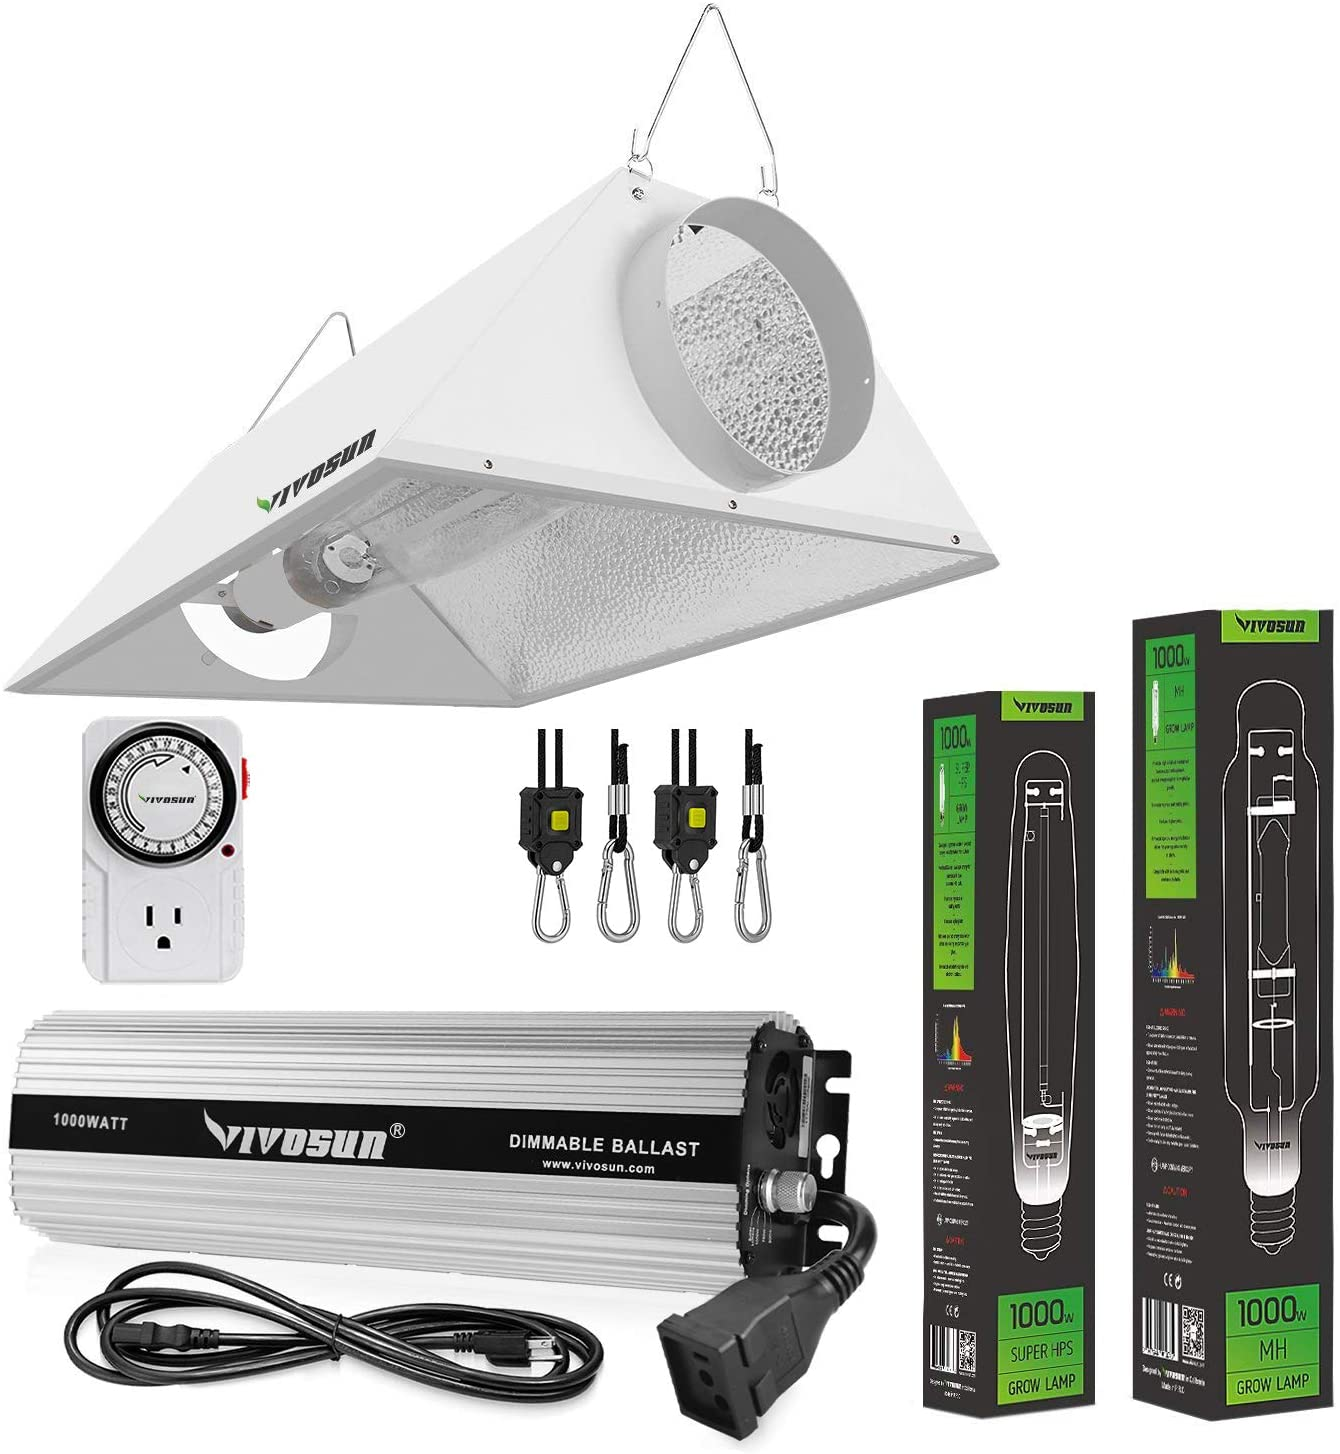 VIVOSUN Hydroponic 1000 Watt HPS MH Grow Light Air Cooled Reflector Kit - VIVOSUN